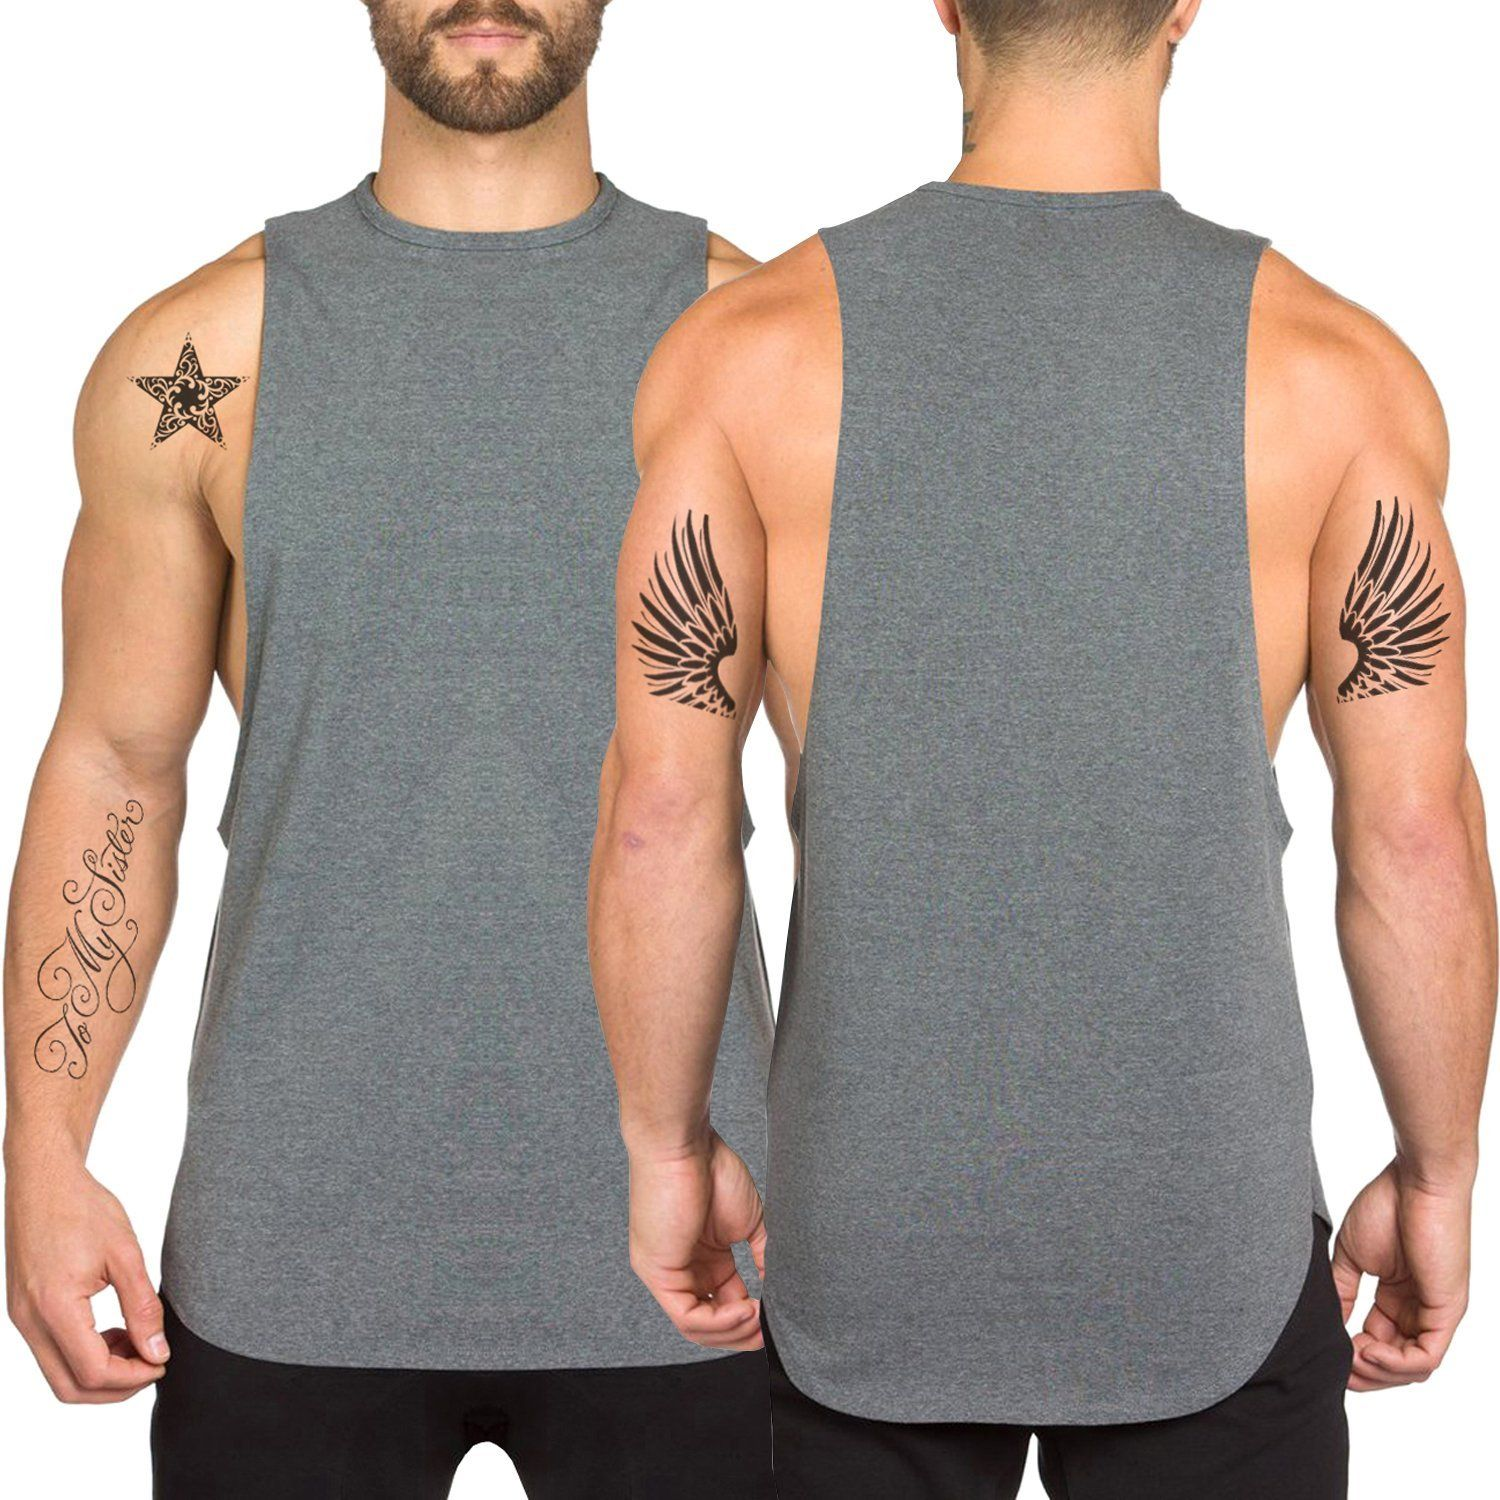 2758a2fe662b3 TEBOOL Men s Fitted Muscle Cut Workout Tank Tops Gym Bodybuilding T-shirts    You can get additional details at the image link.